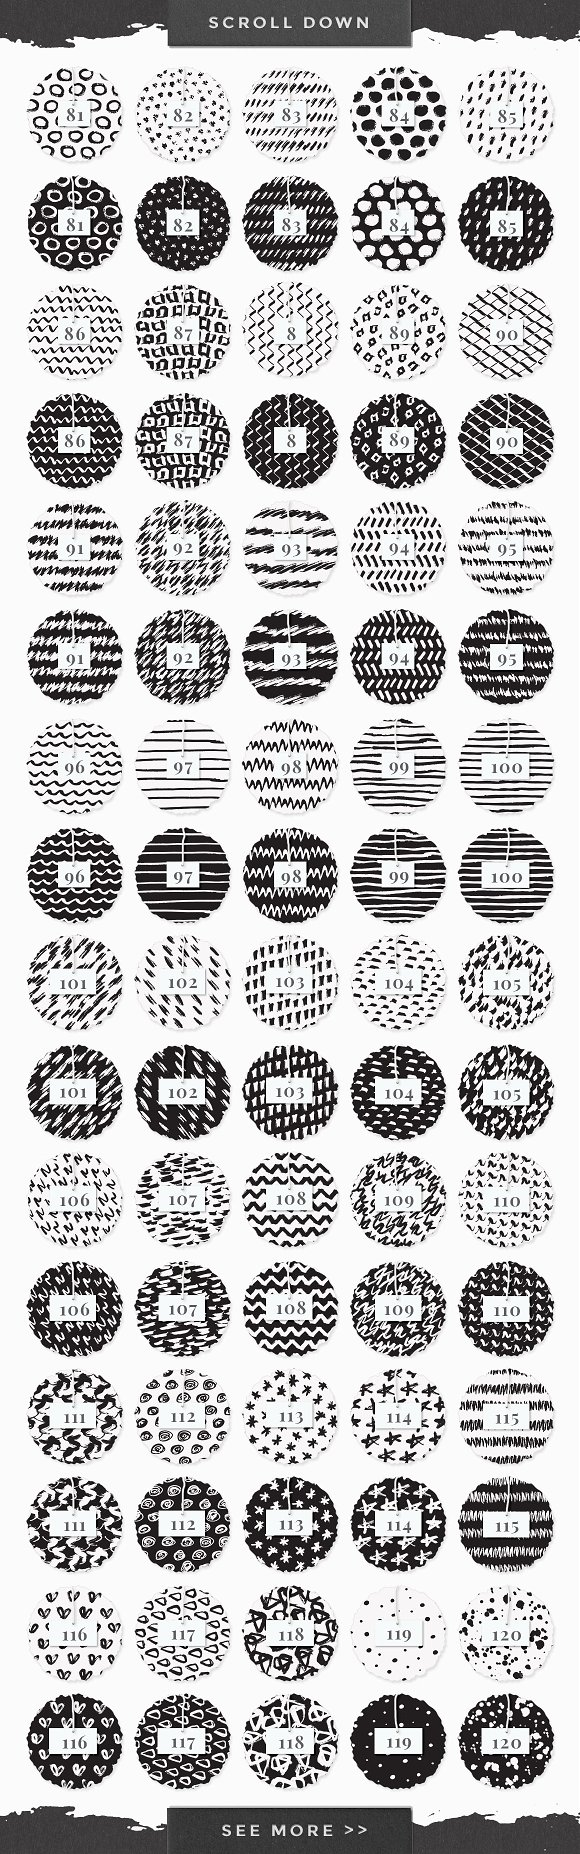 InkBox - 240 Inky Patterns + Extras! in Patterns - product preview 6